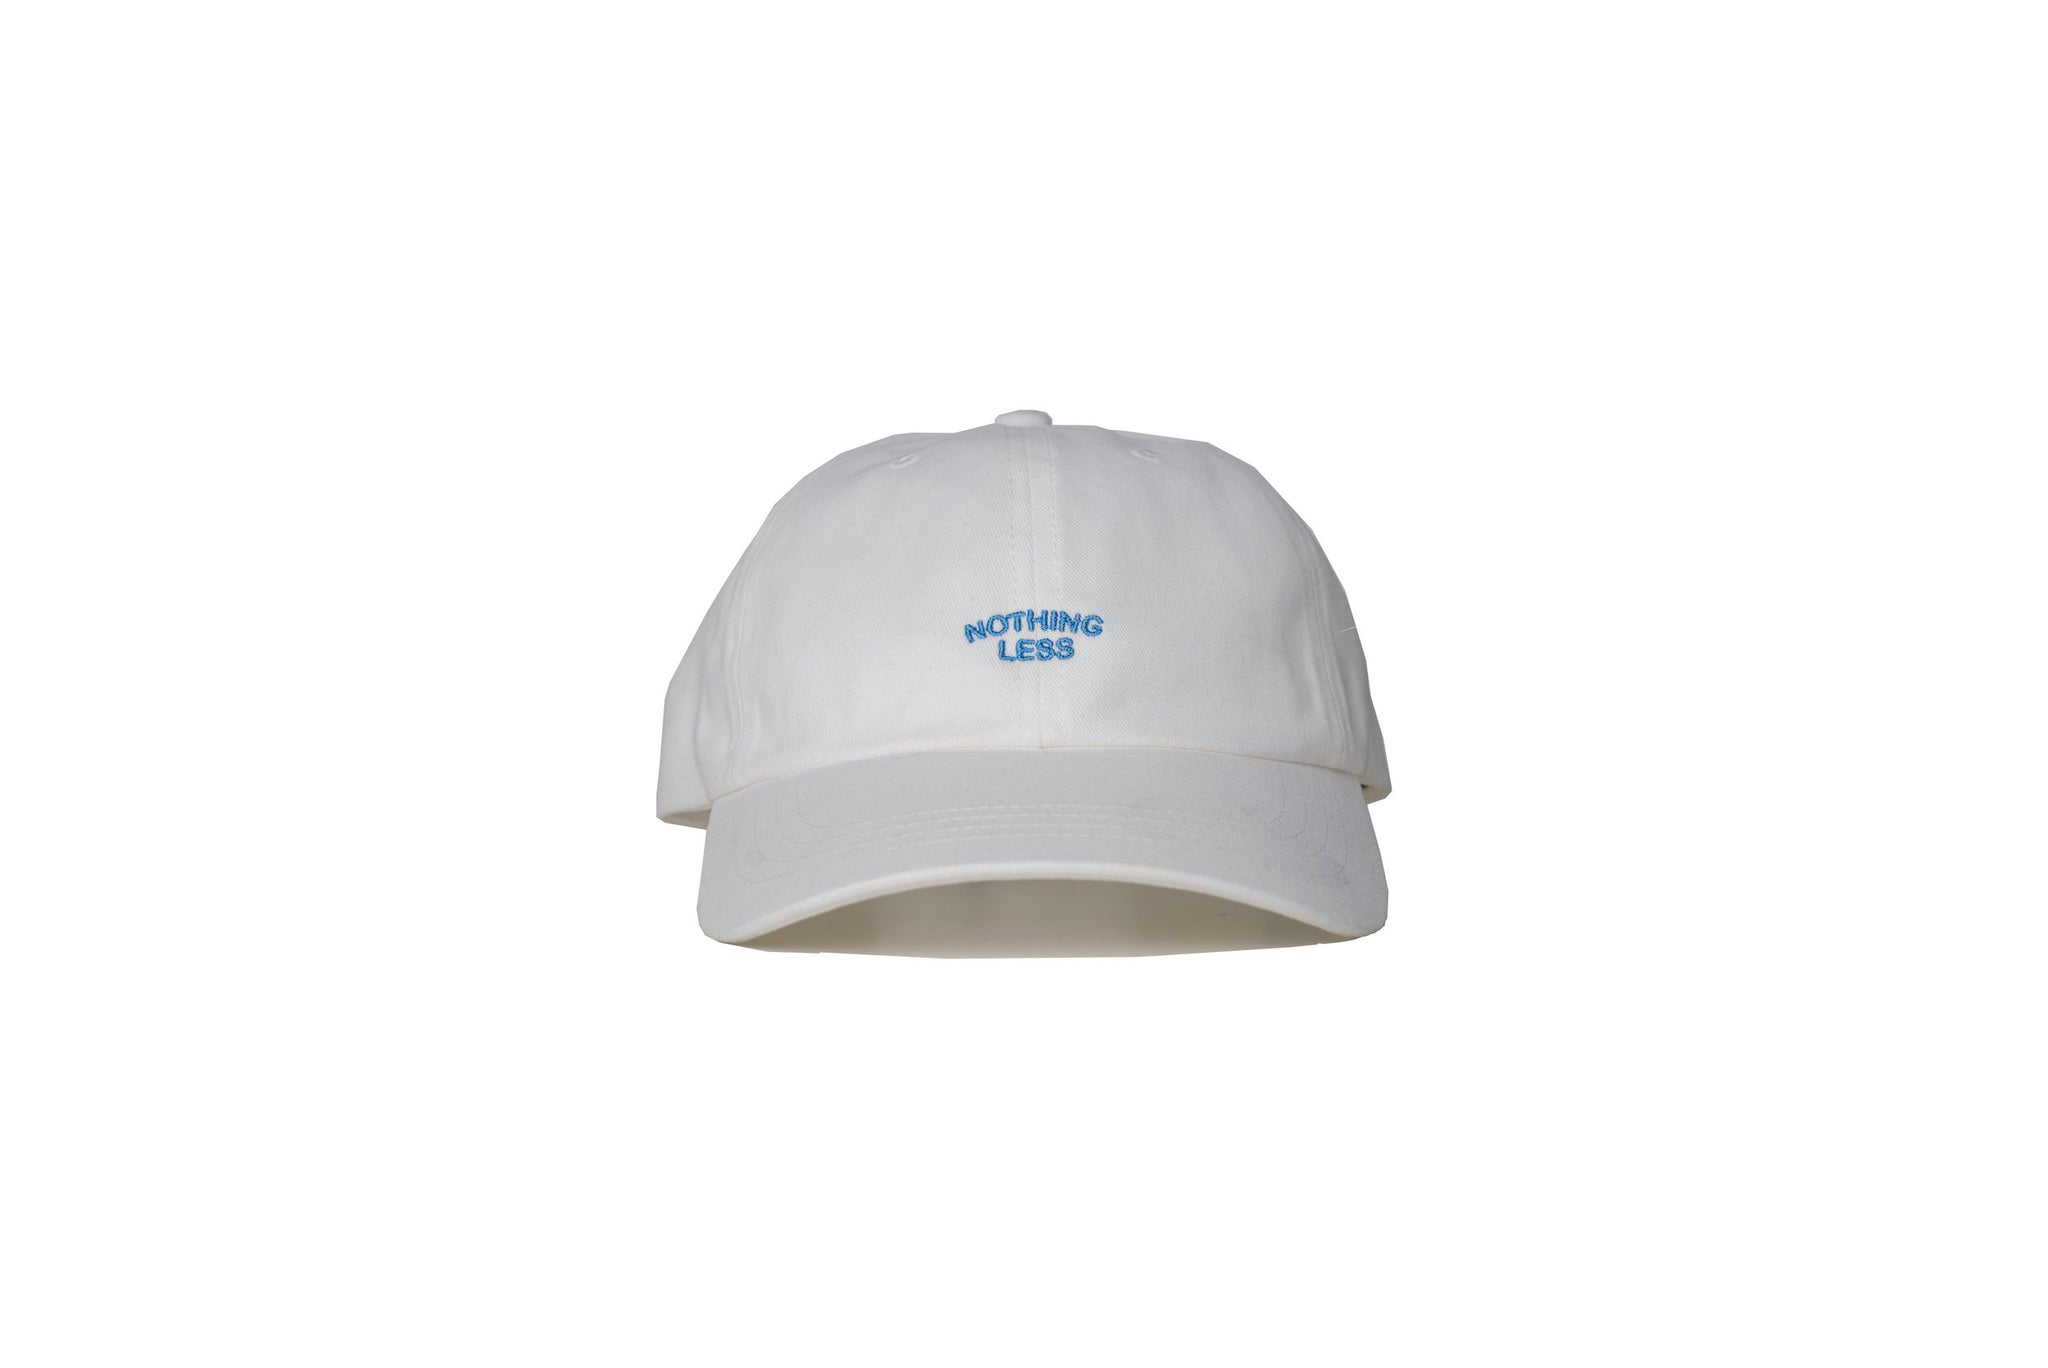 Arc Cap (White)